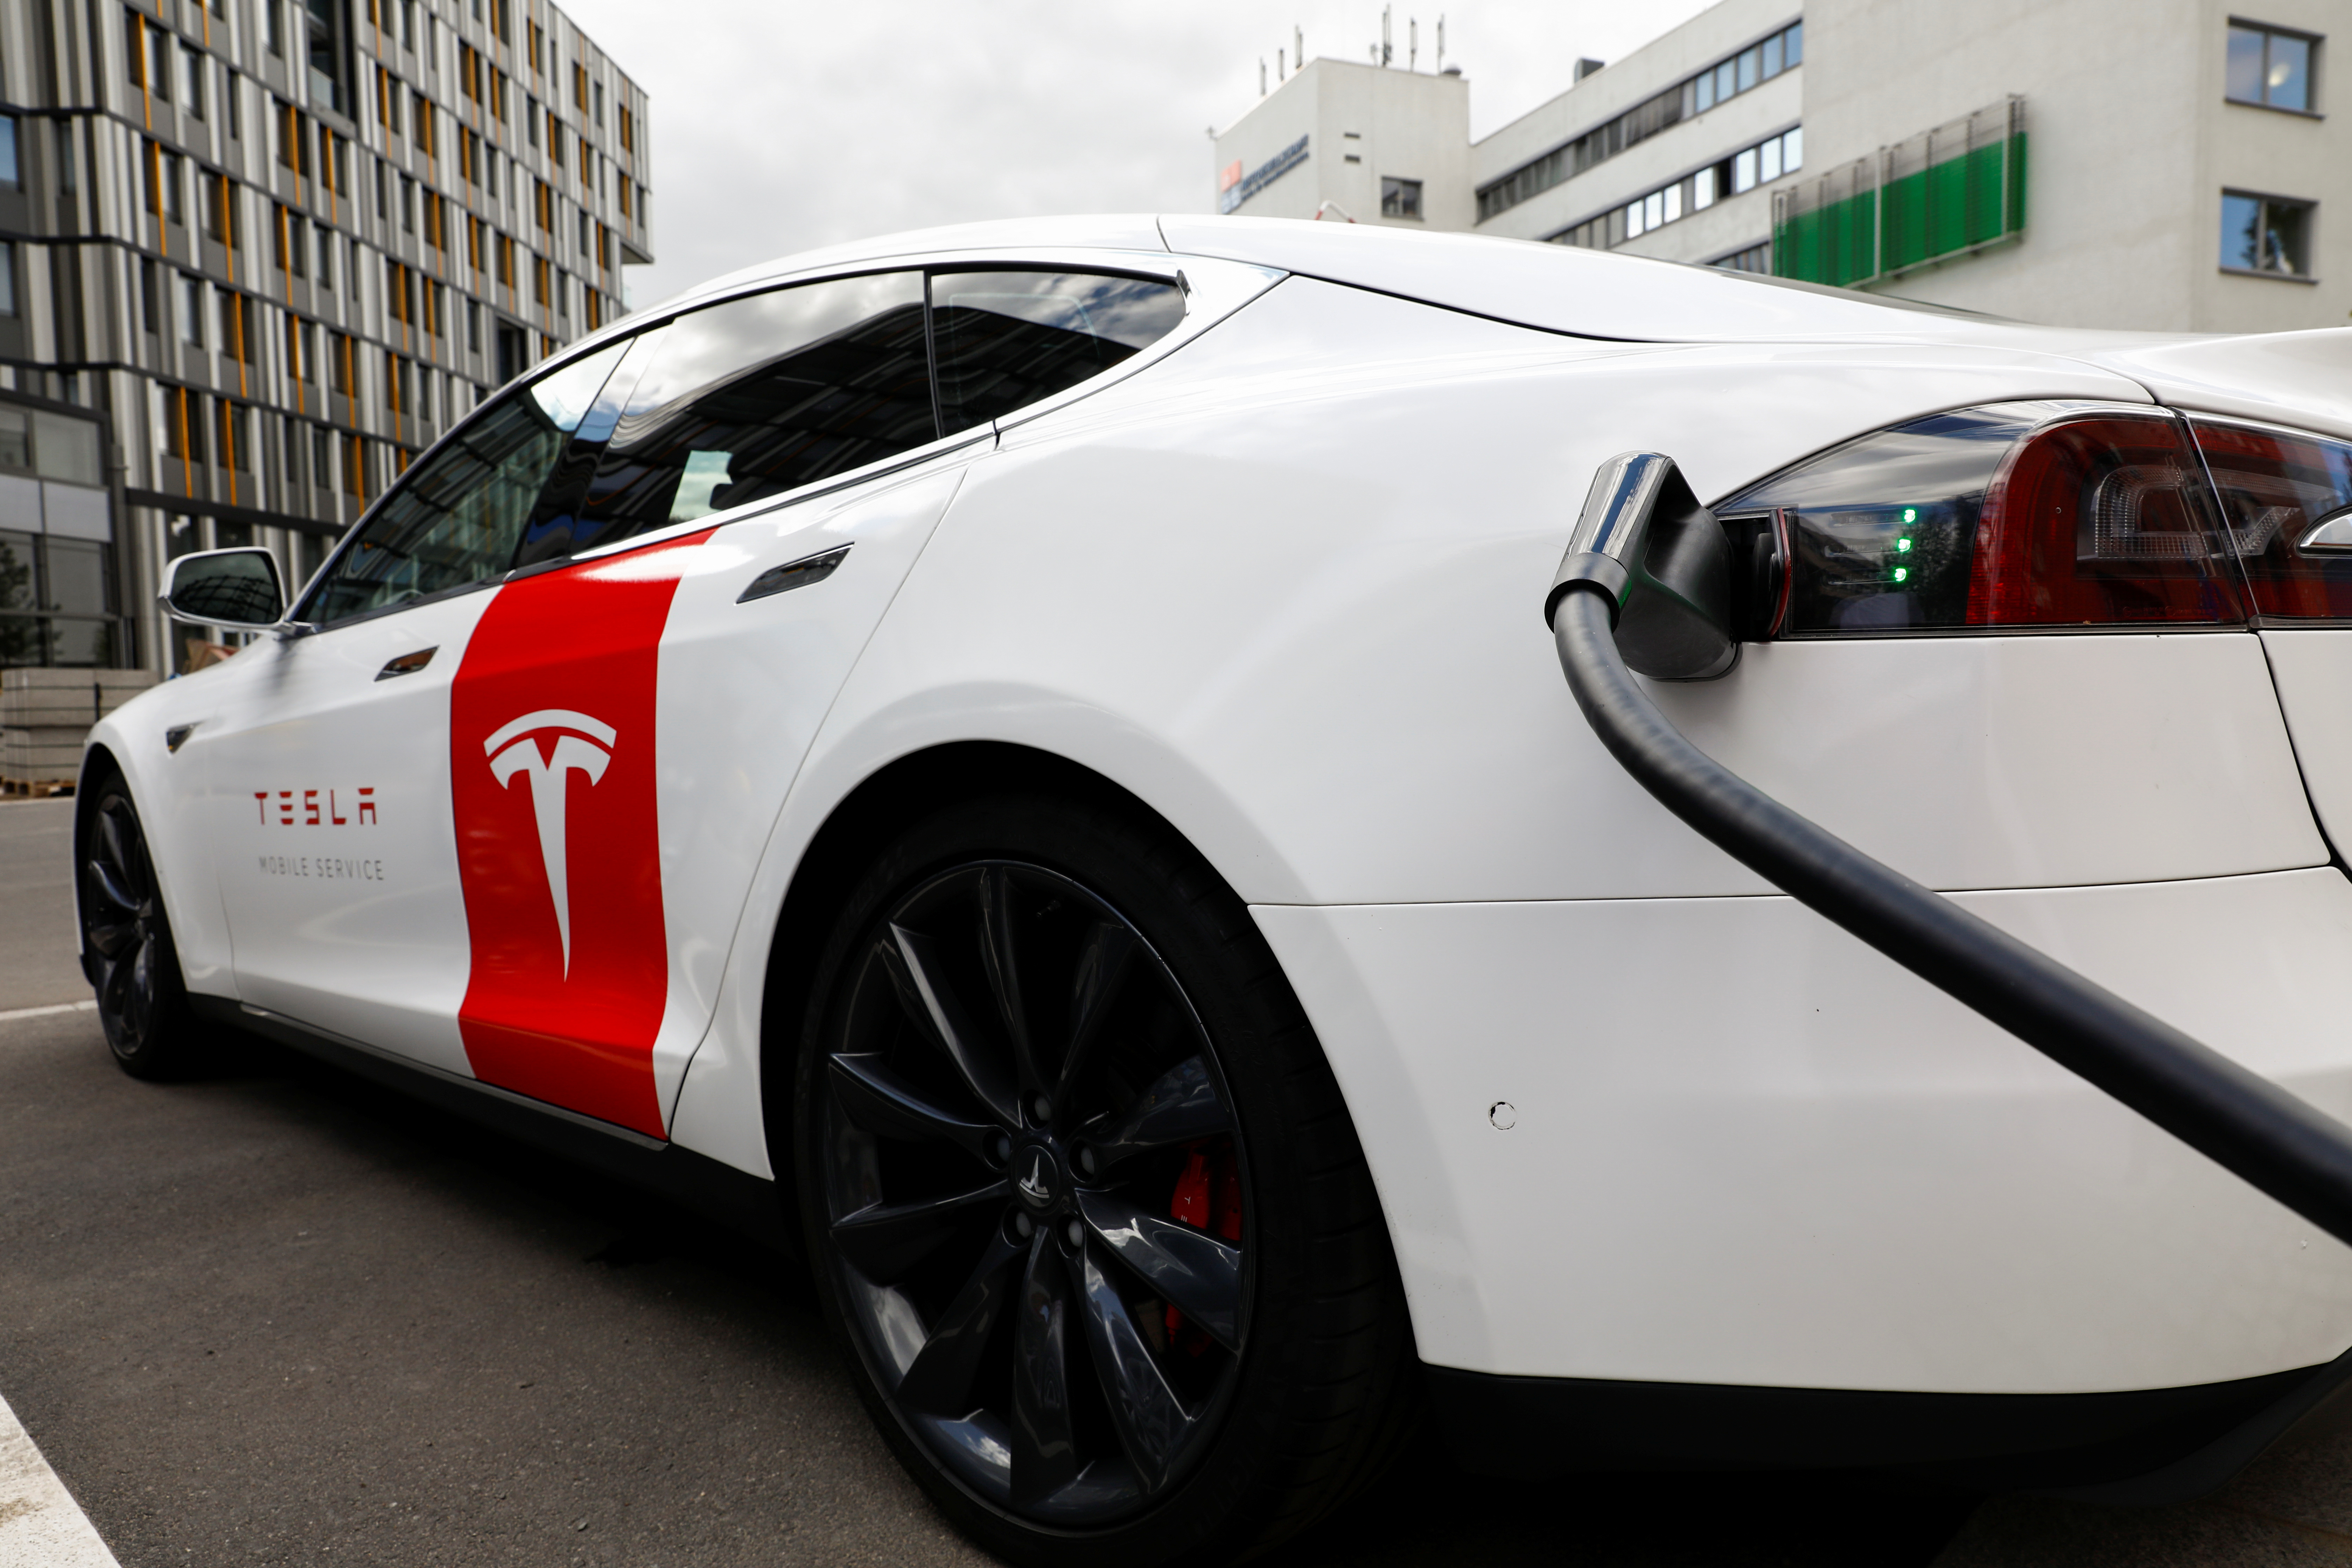 A Tesla car is seen at the V3 supercharger equipment during the presentation of the new charge system in the EUREF campus in Berlin, Germany September 10, 2020. REUTERS/Michele Tantussi